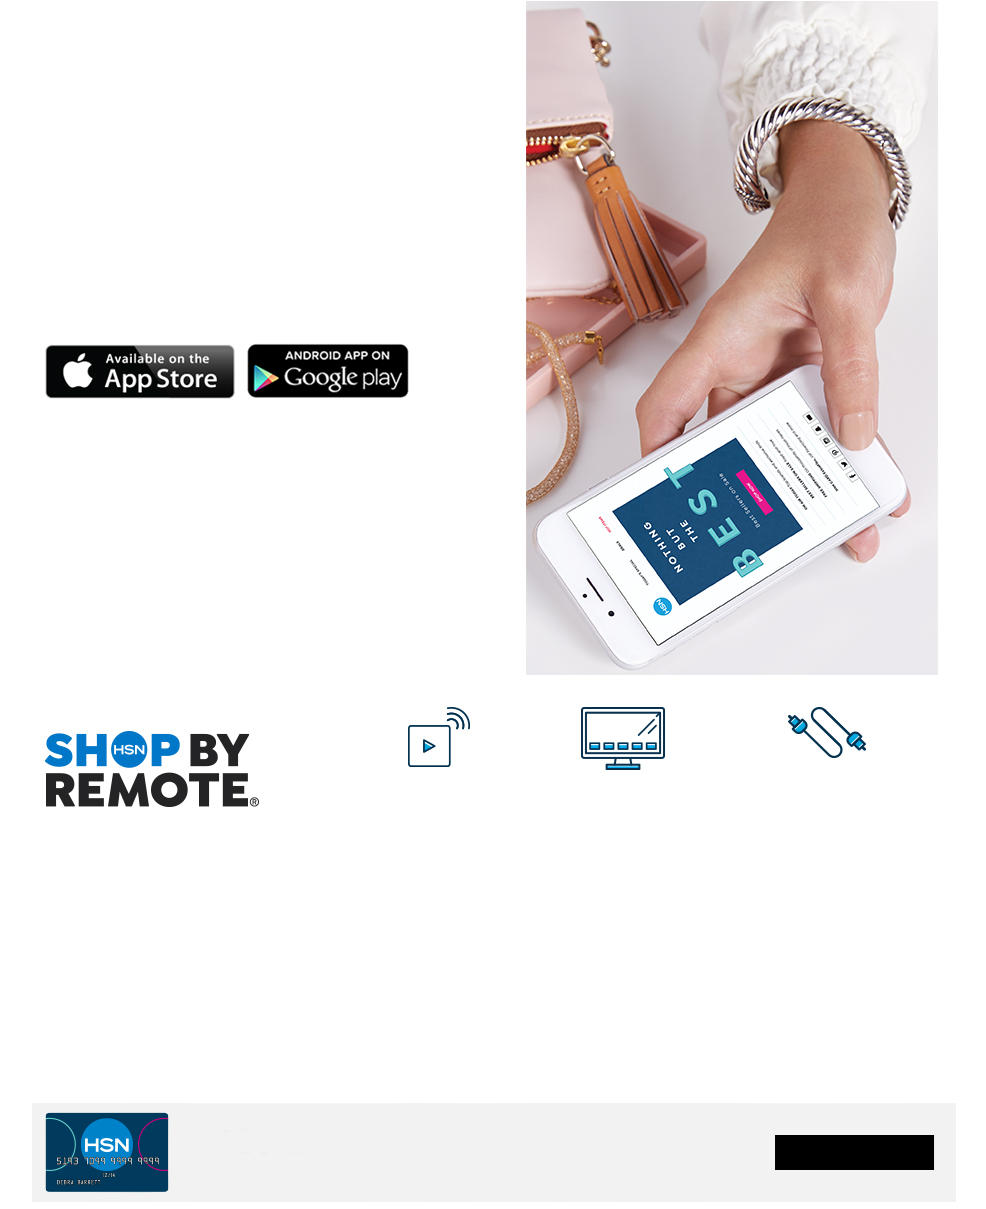 Available on the App Store. Android App on Google play. Shop by Remote. Nothing but the best.